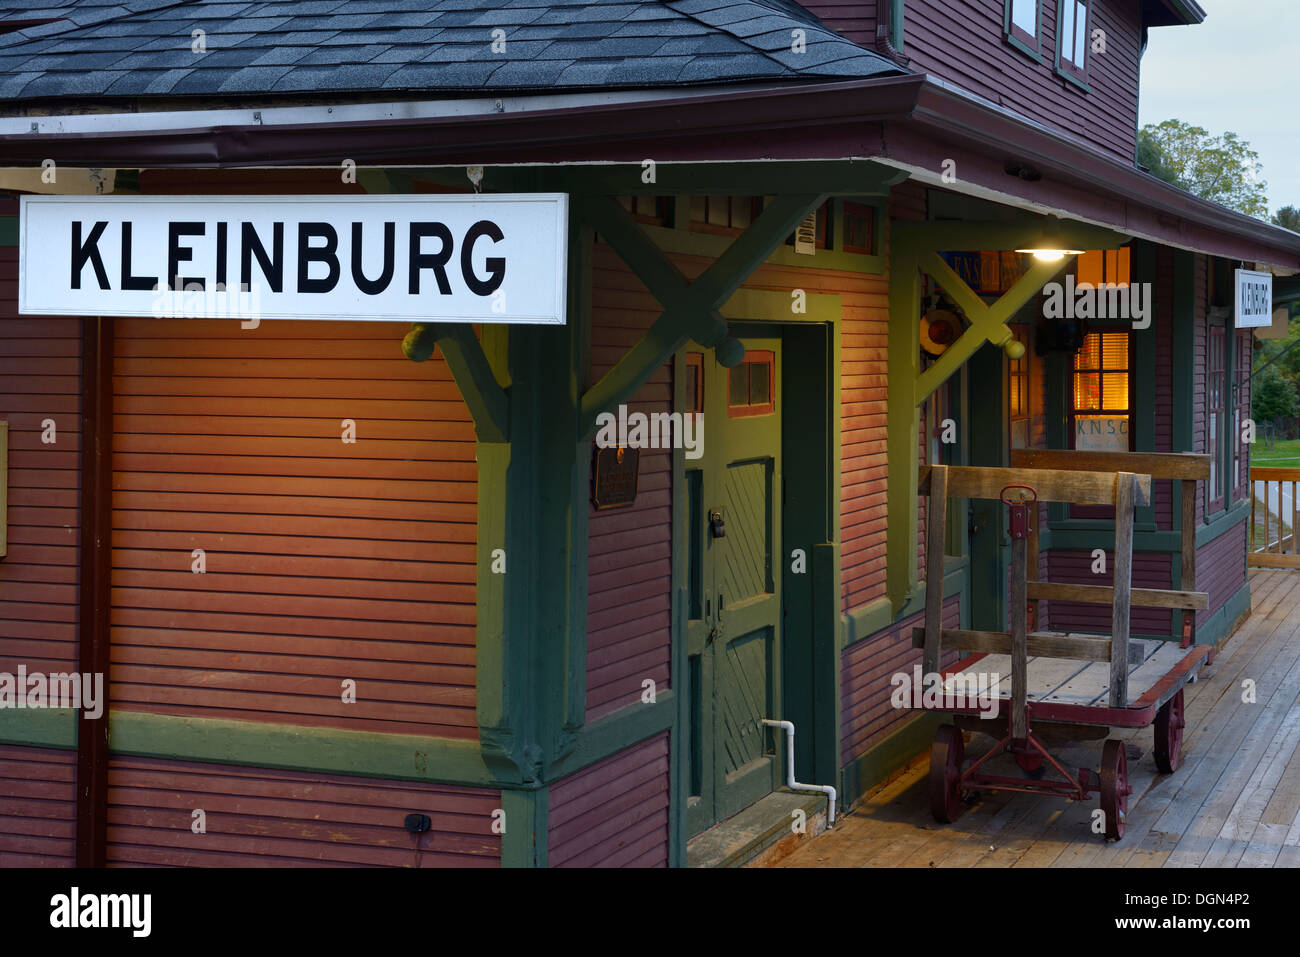 Kleinburg Railway Station Scout House at dusk - Stock Image